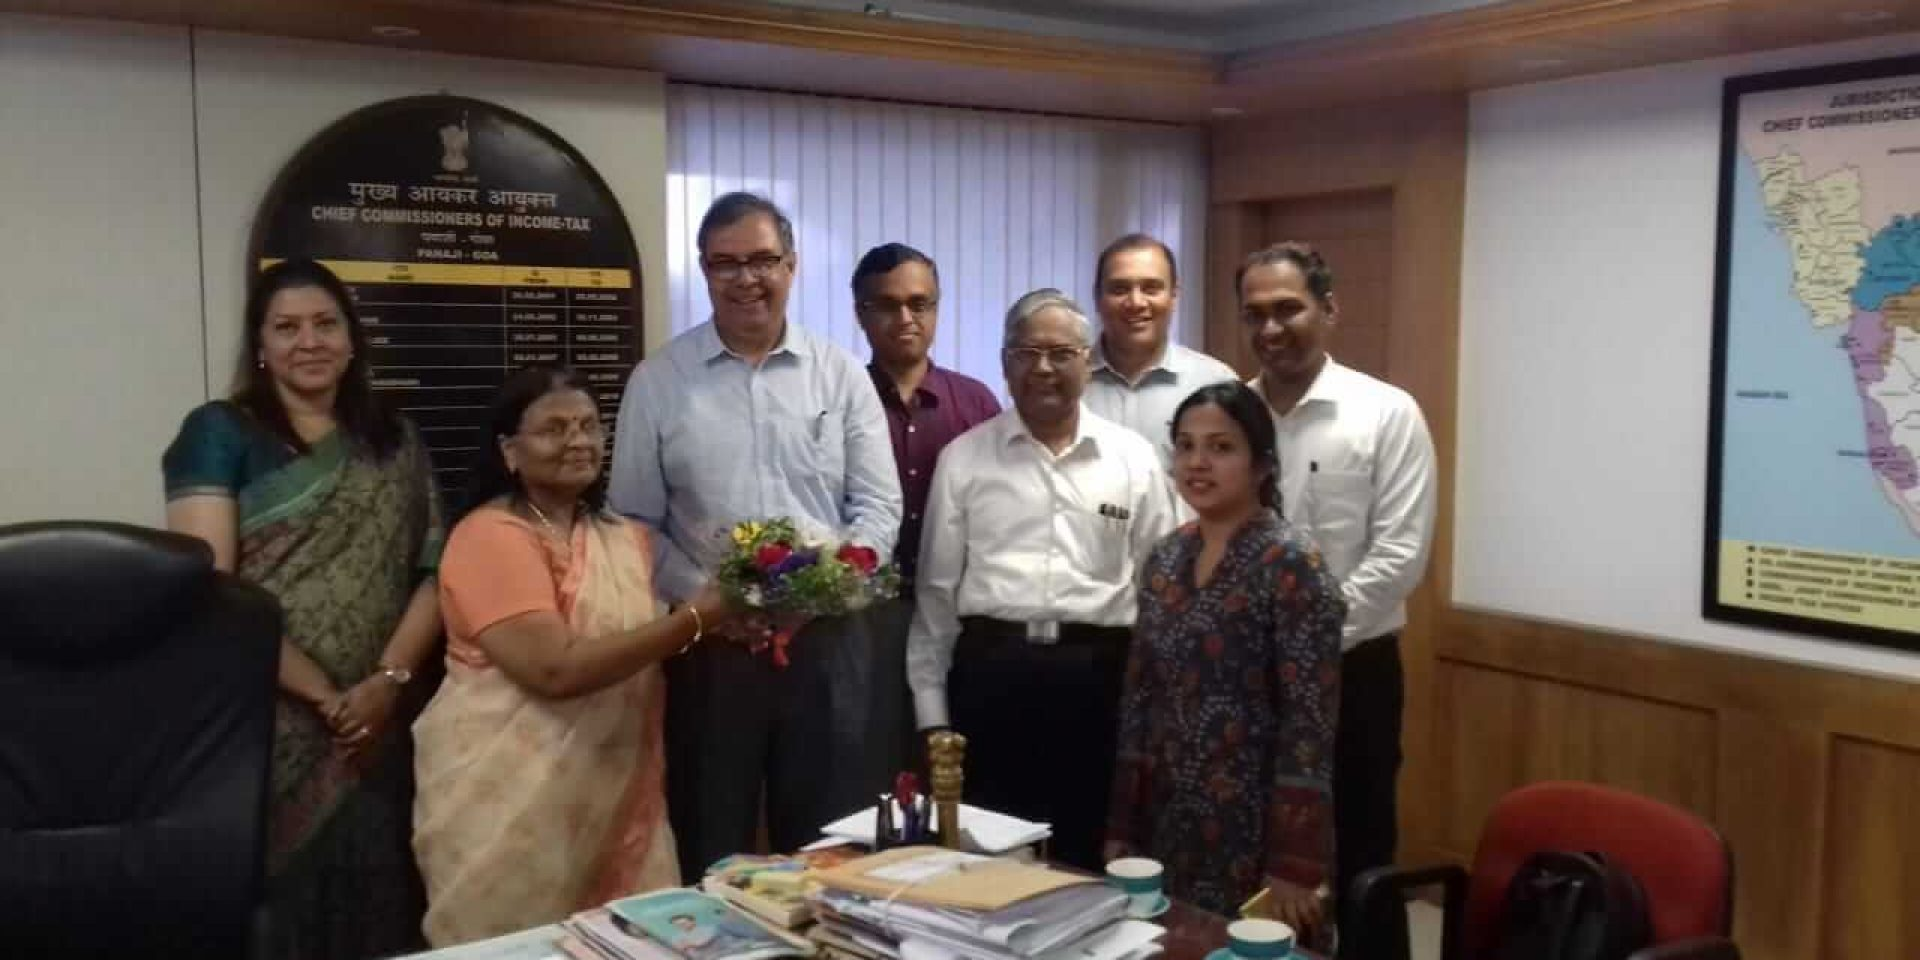 GCCI President and Taxation Committee called on the CCIT-Goa Ms Usha Nair, who is retiring on 31st Jan, 2019. Seen with Ms Amrapalli Das, CIT Goa and senior CA R. K. Pikle | 29th January, 2019.